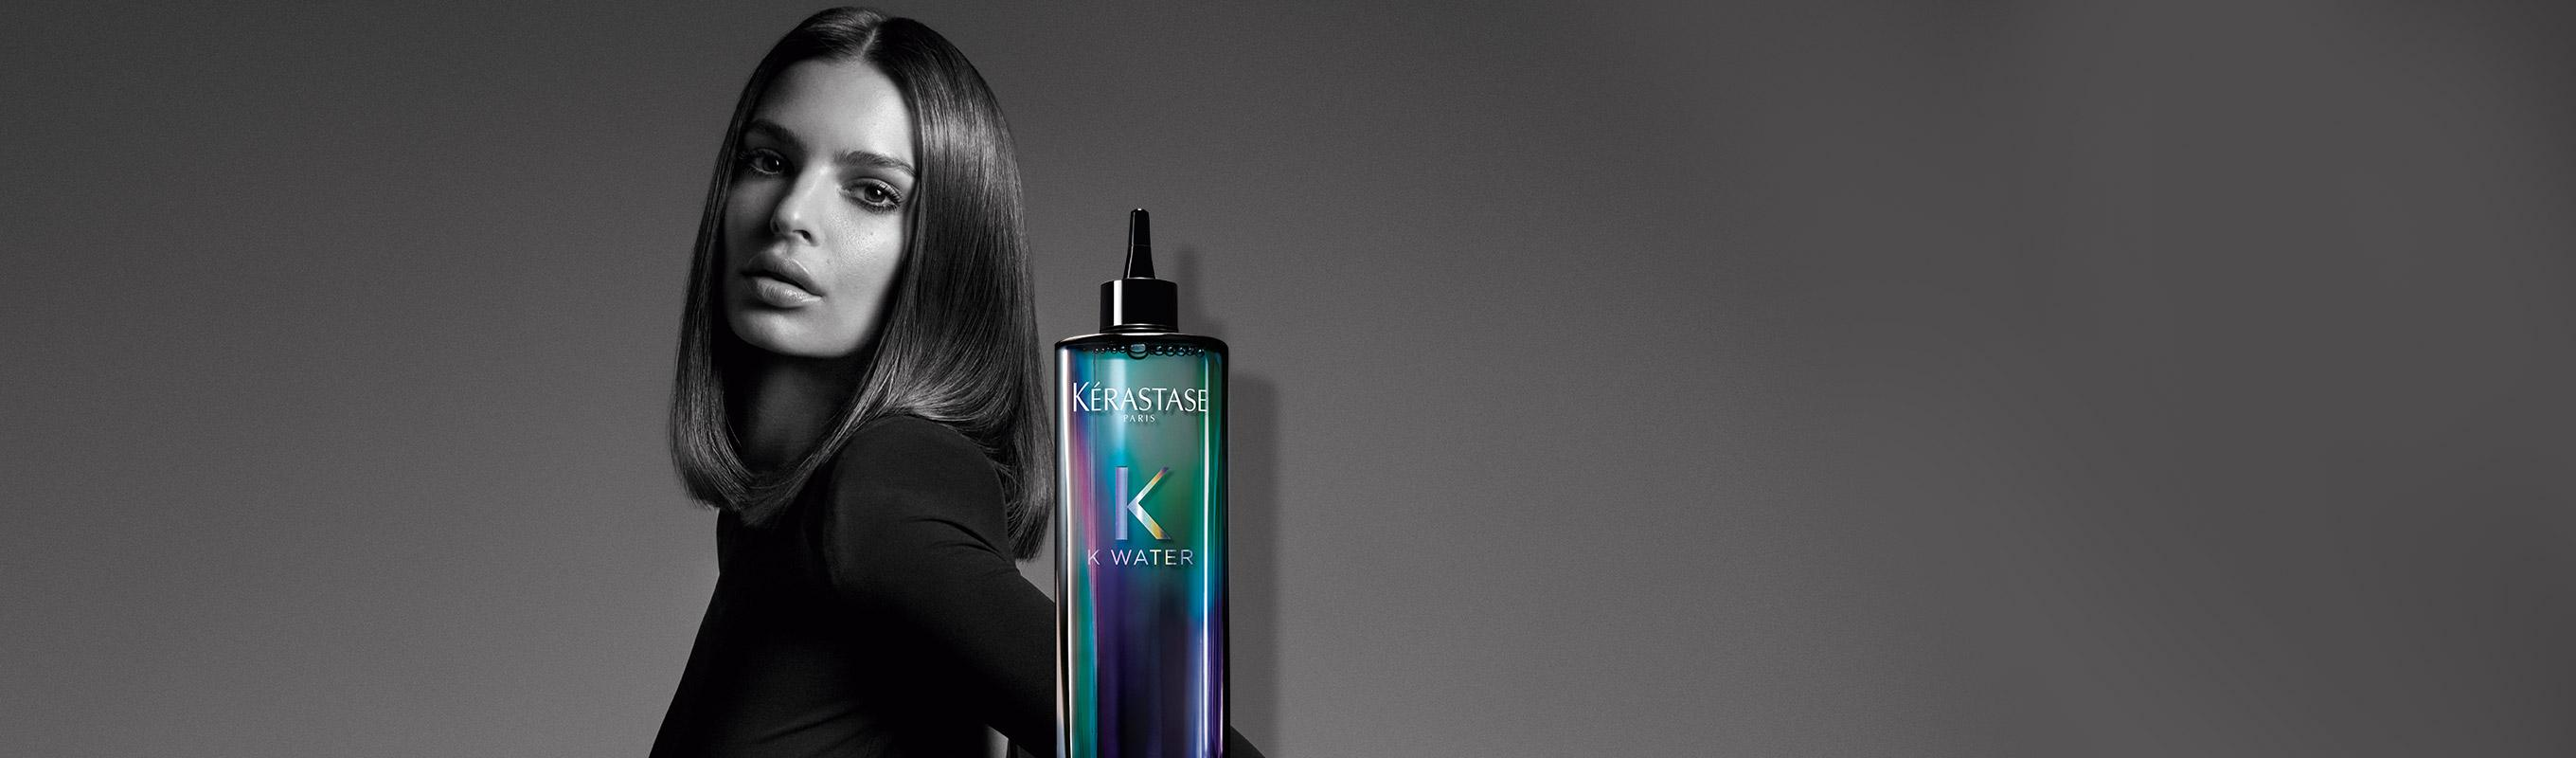 New Kwater in-salon treatment, Discover Now